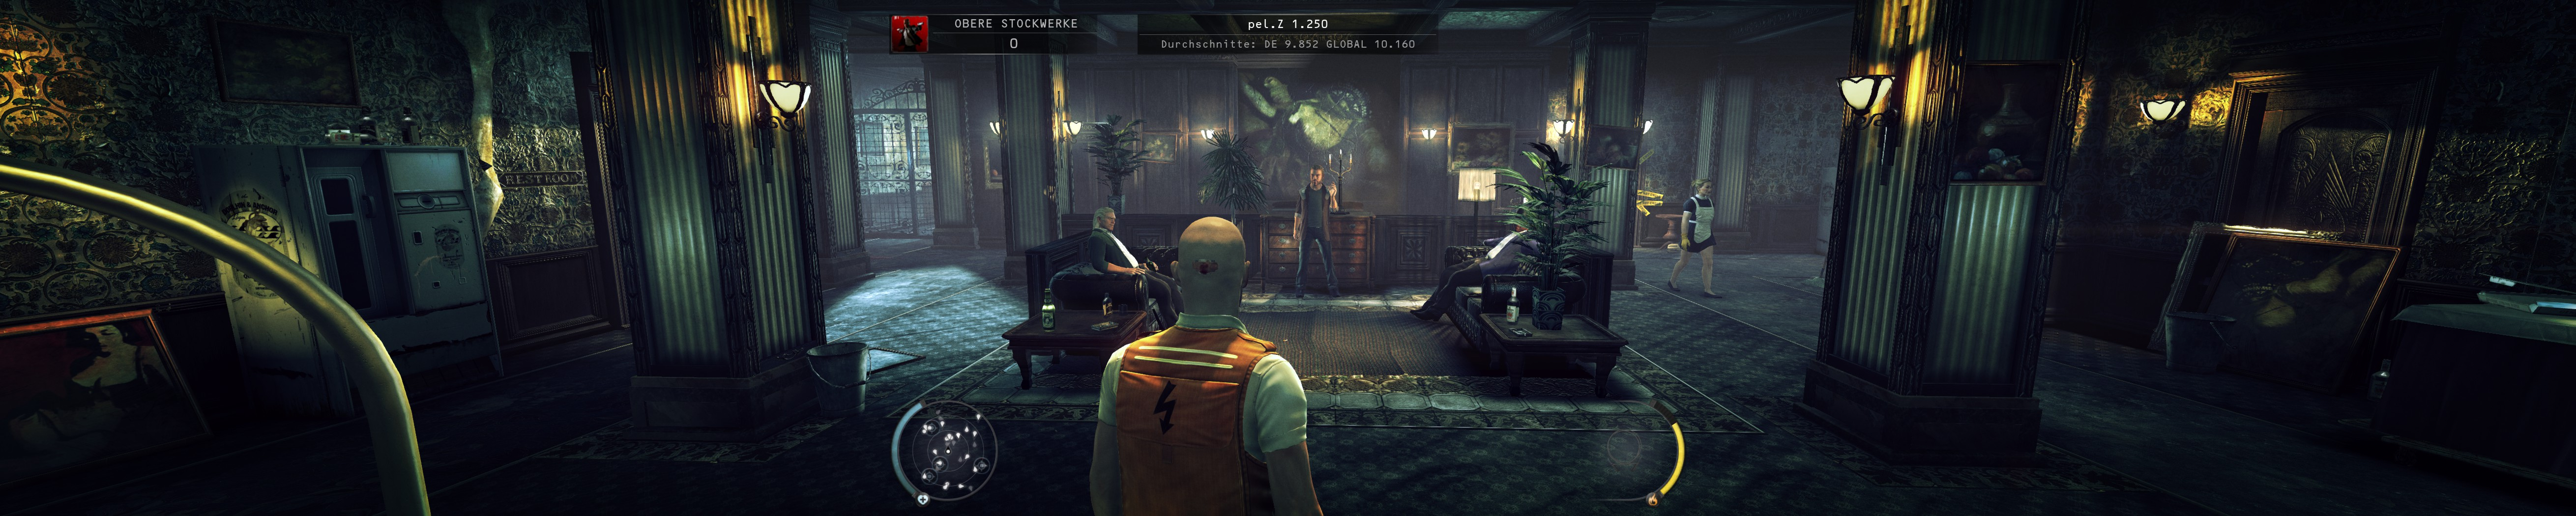 hitman_absolution_2013-05-17_00013